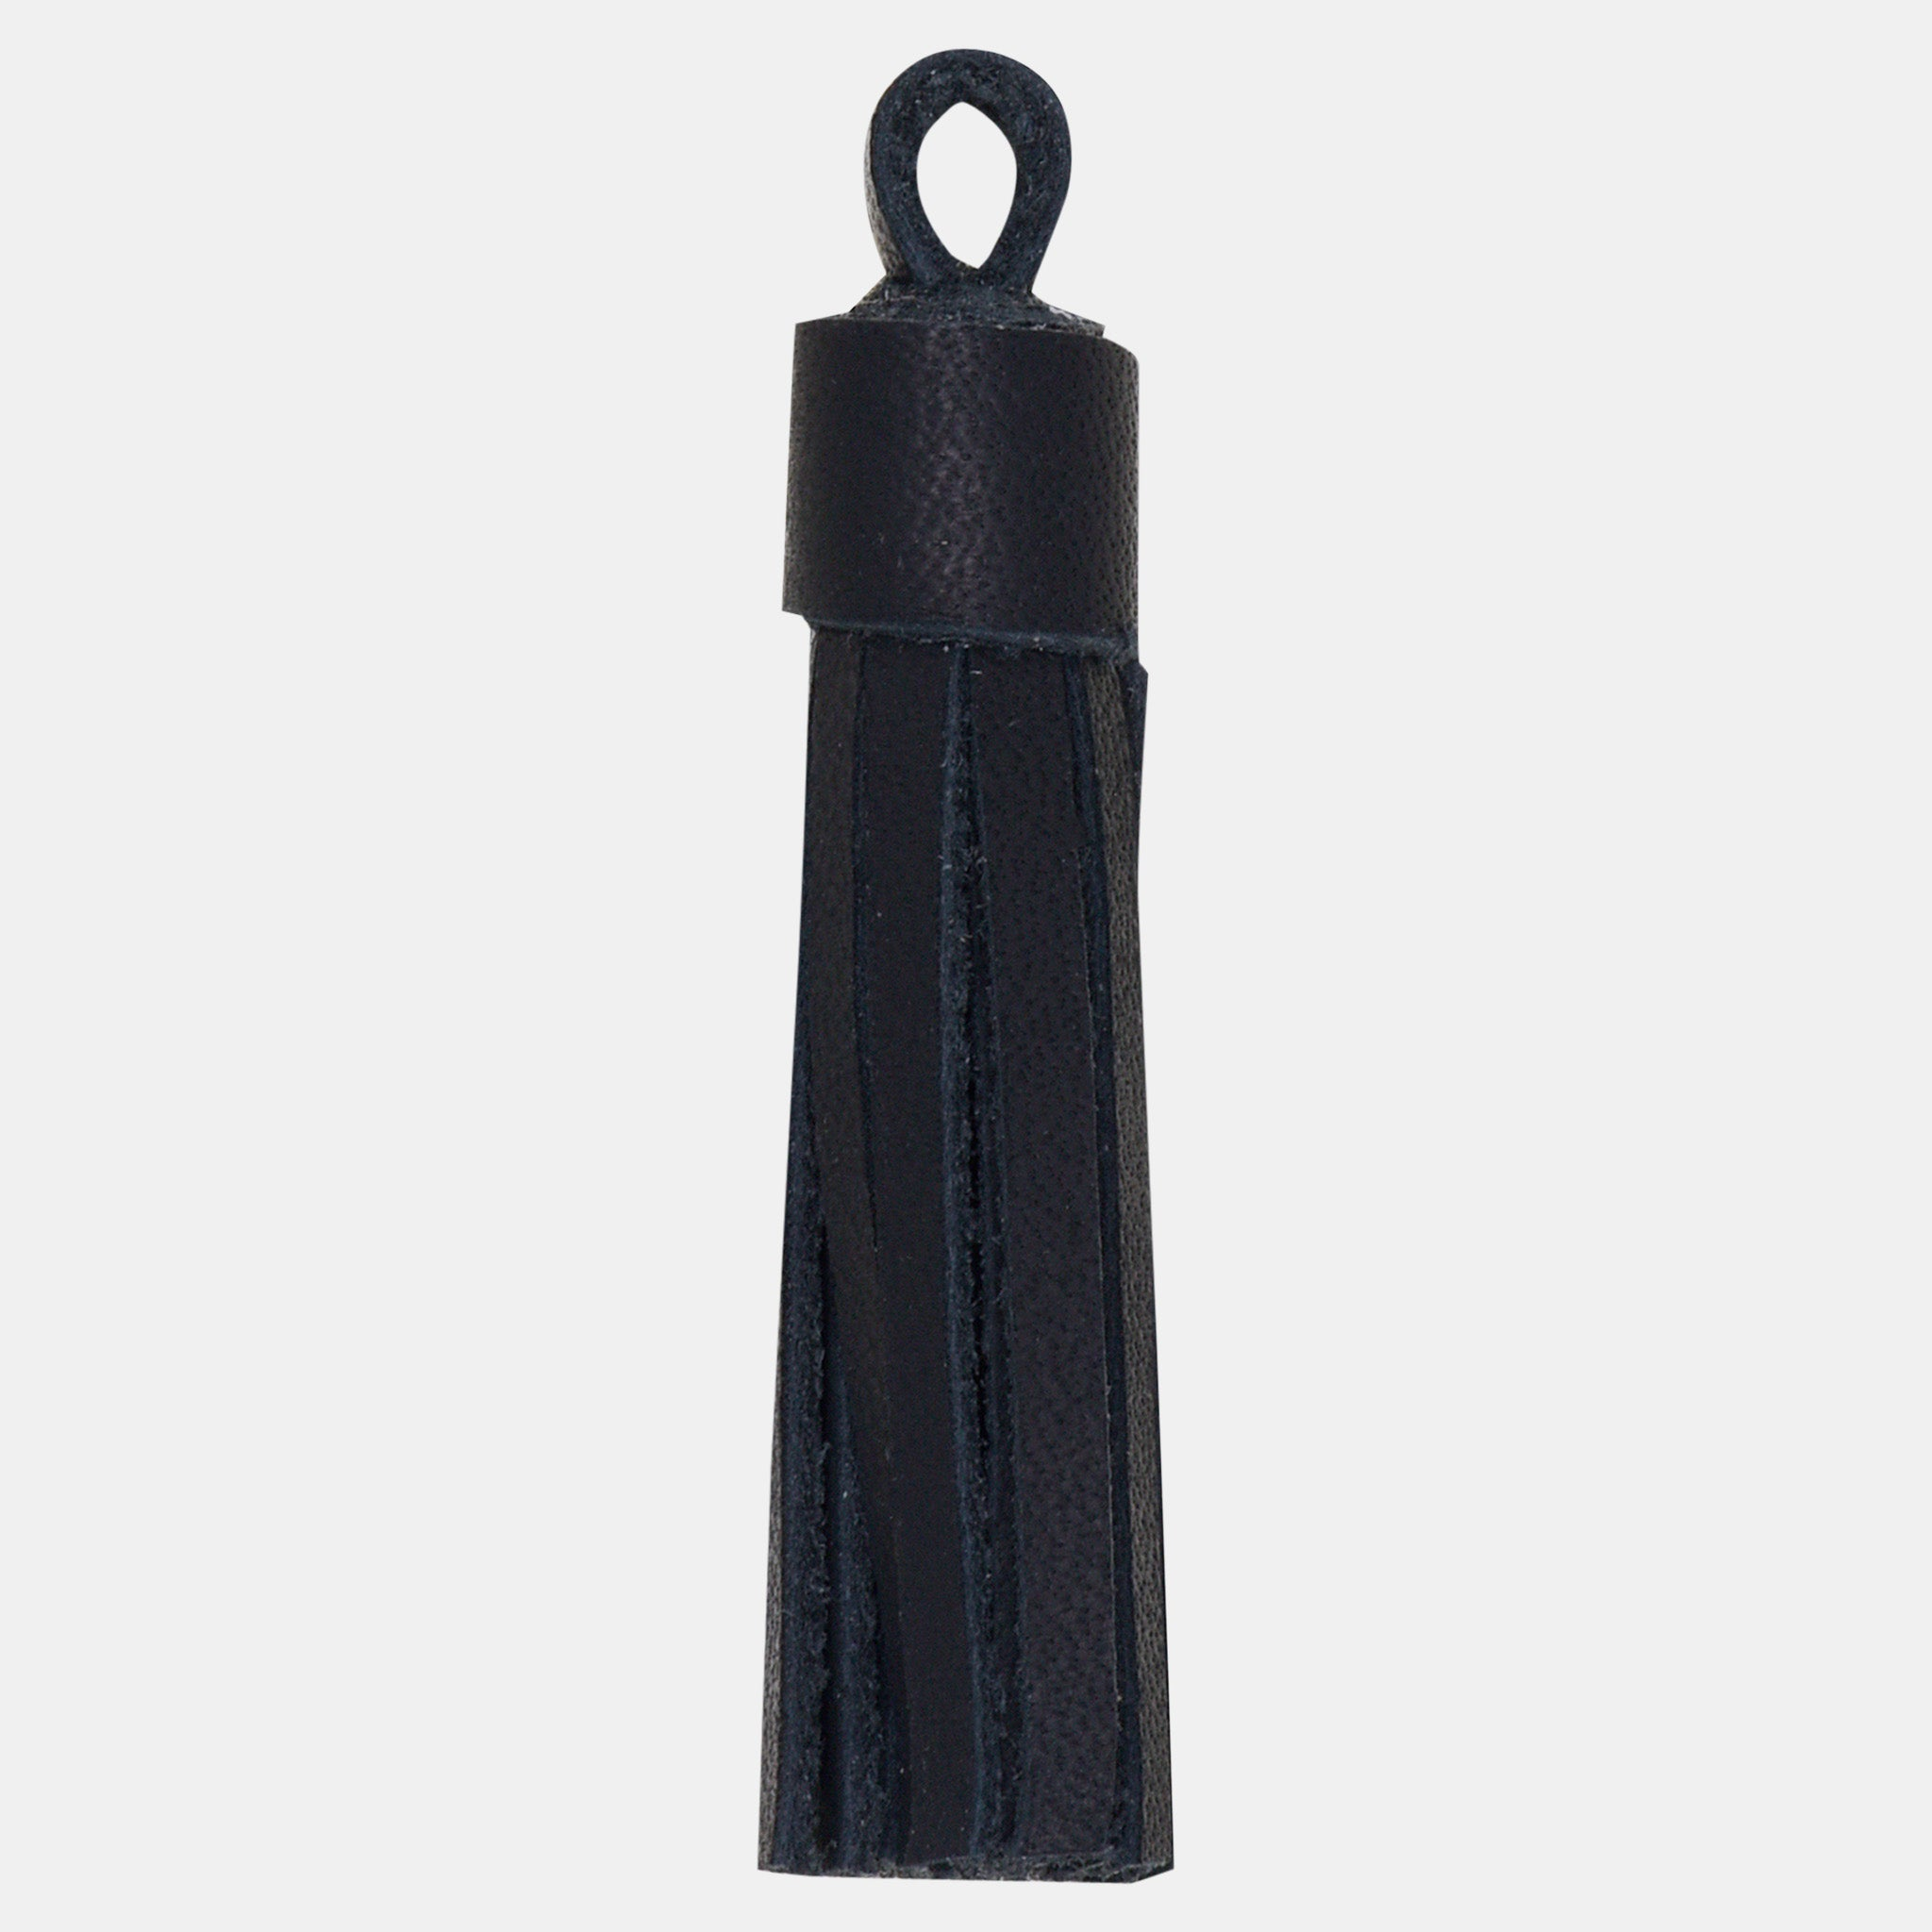 Leather Tassel Set Black (4 per set)